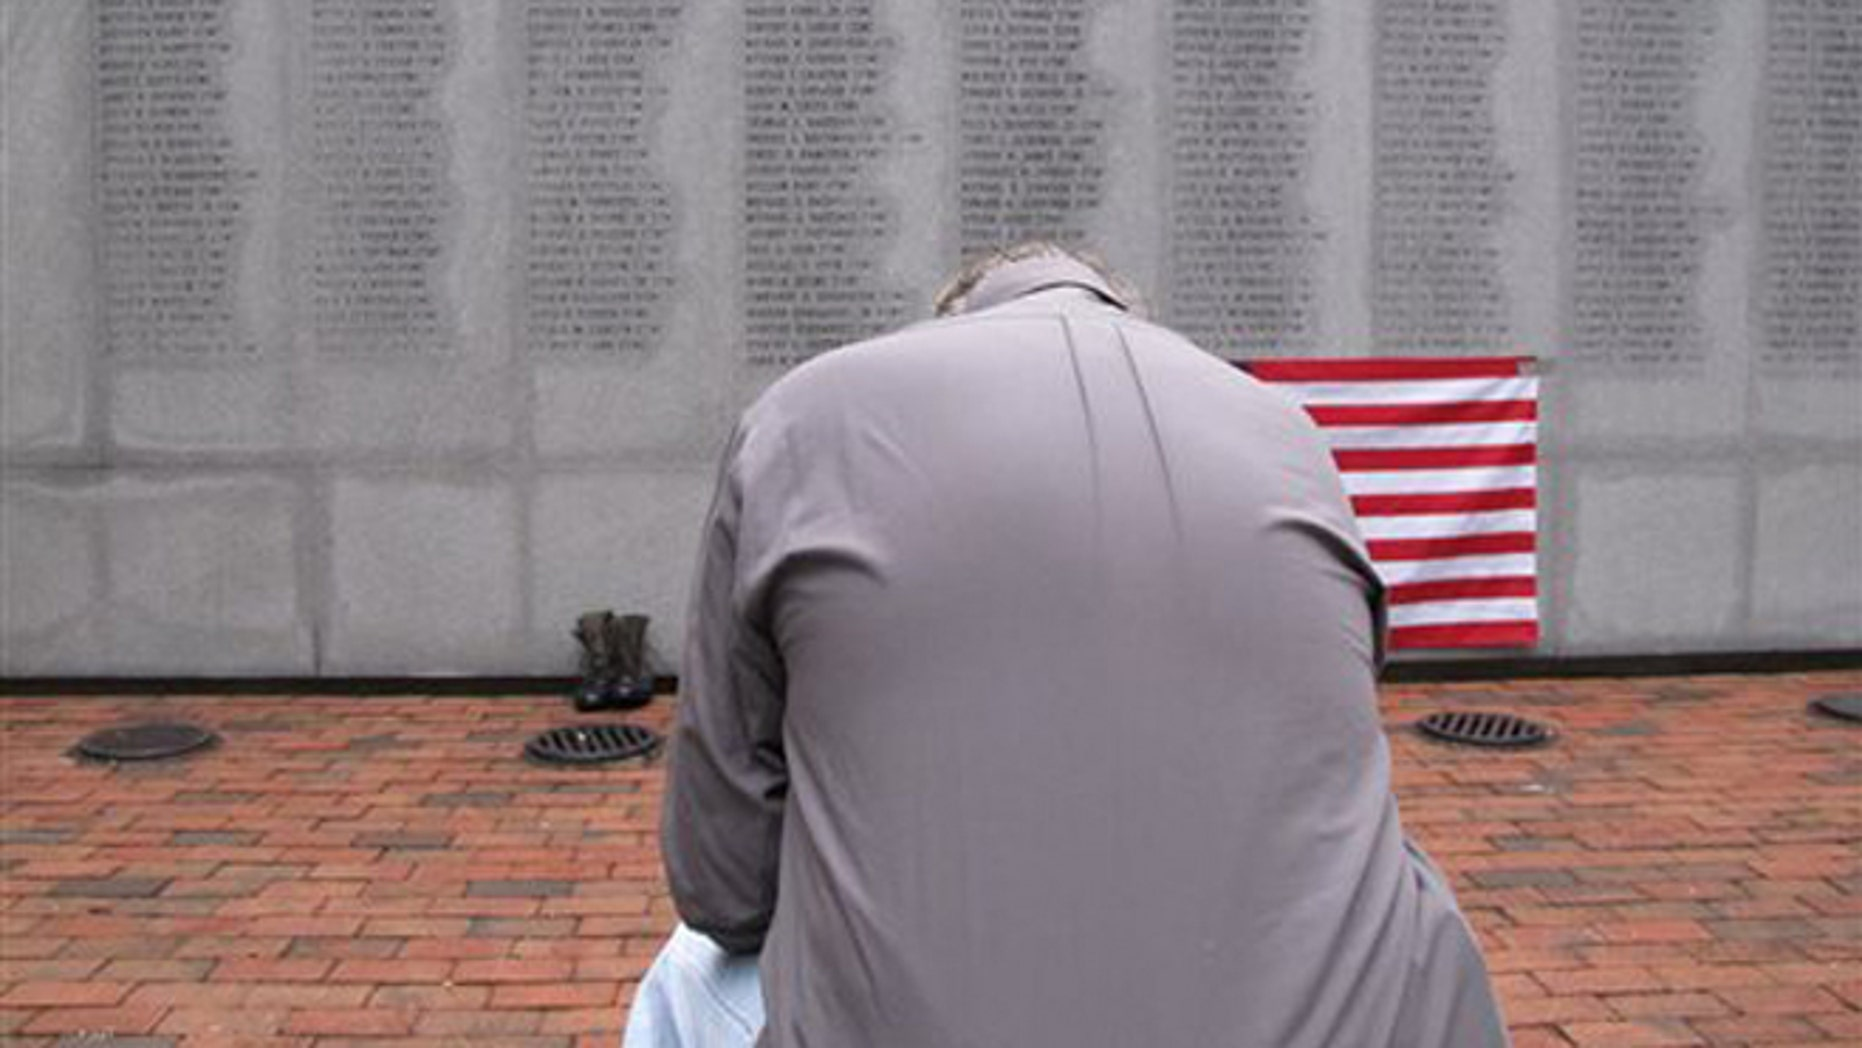 """Oct. 23, 2013: Former Marine Ed Ayers of Scranton, Penn., hangs his head and weeps at the Beirut Bombing Memorial in Jacksonville, N.C. Wednesday was the 30th anniversary of a terrorist bombing that killed 241 U.S. service members. Ayers, who did two tours in Lebanon, said the peacekeeping mission there was worth it but, """"I wish it was handled differently."""""""